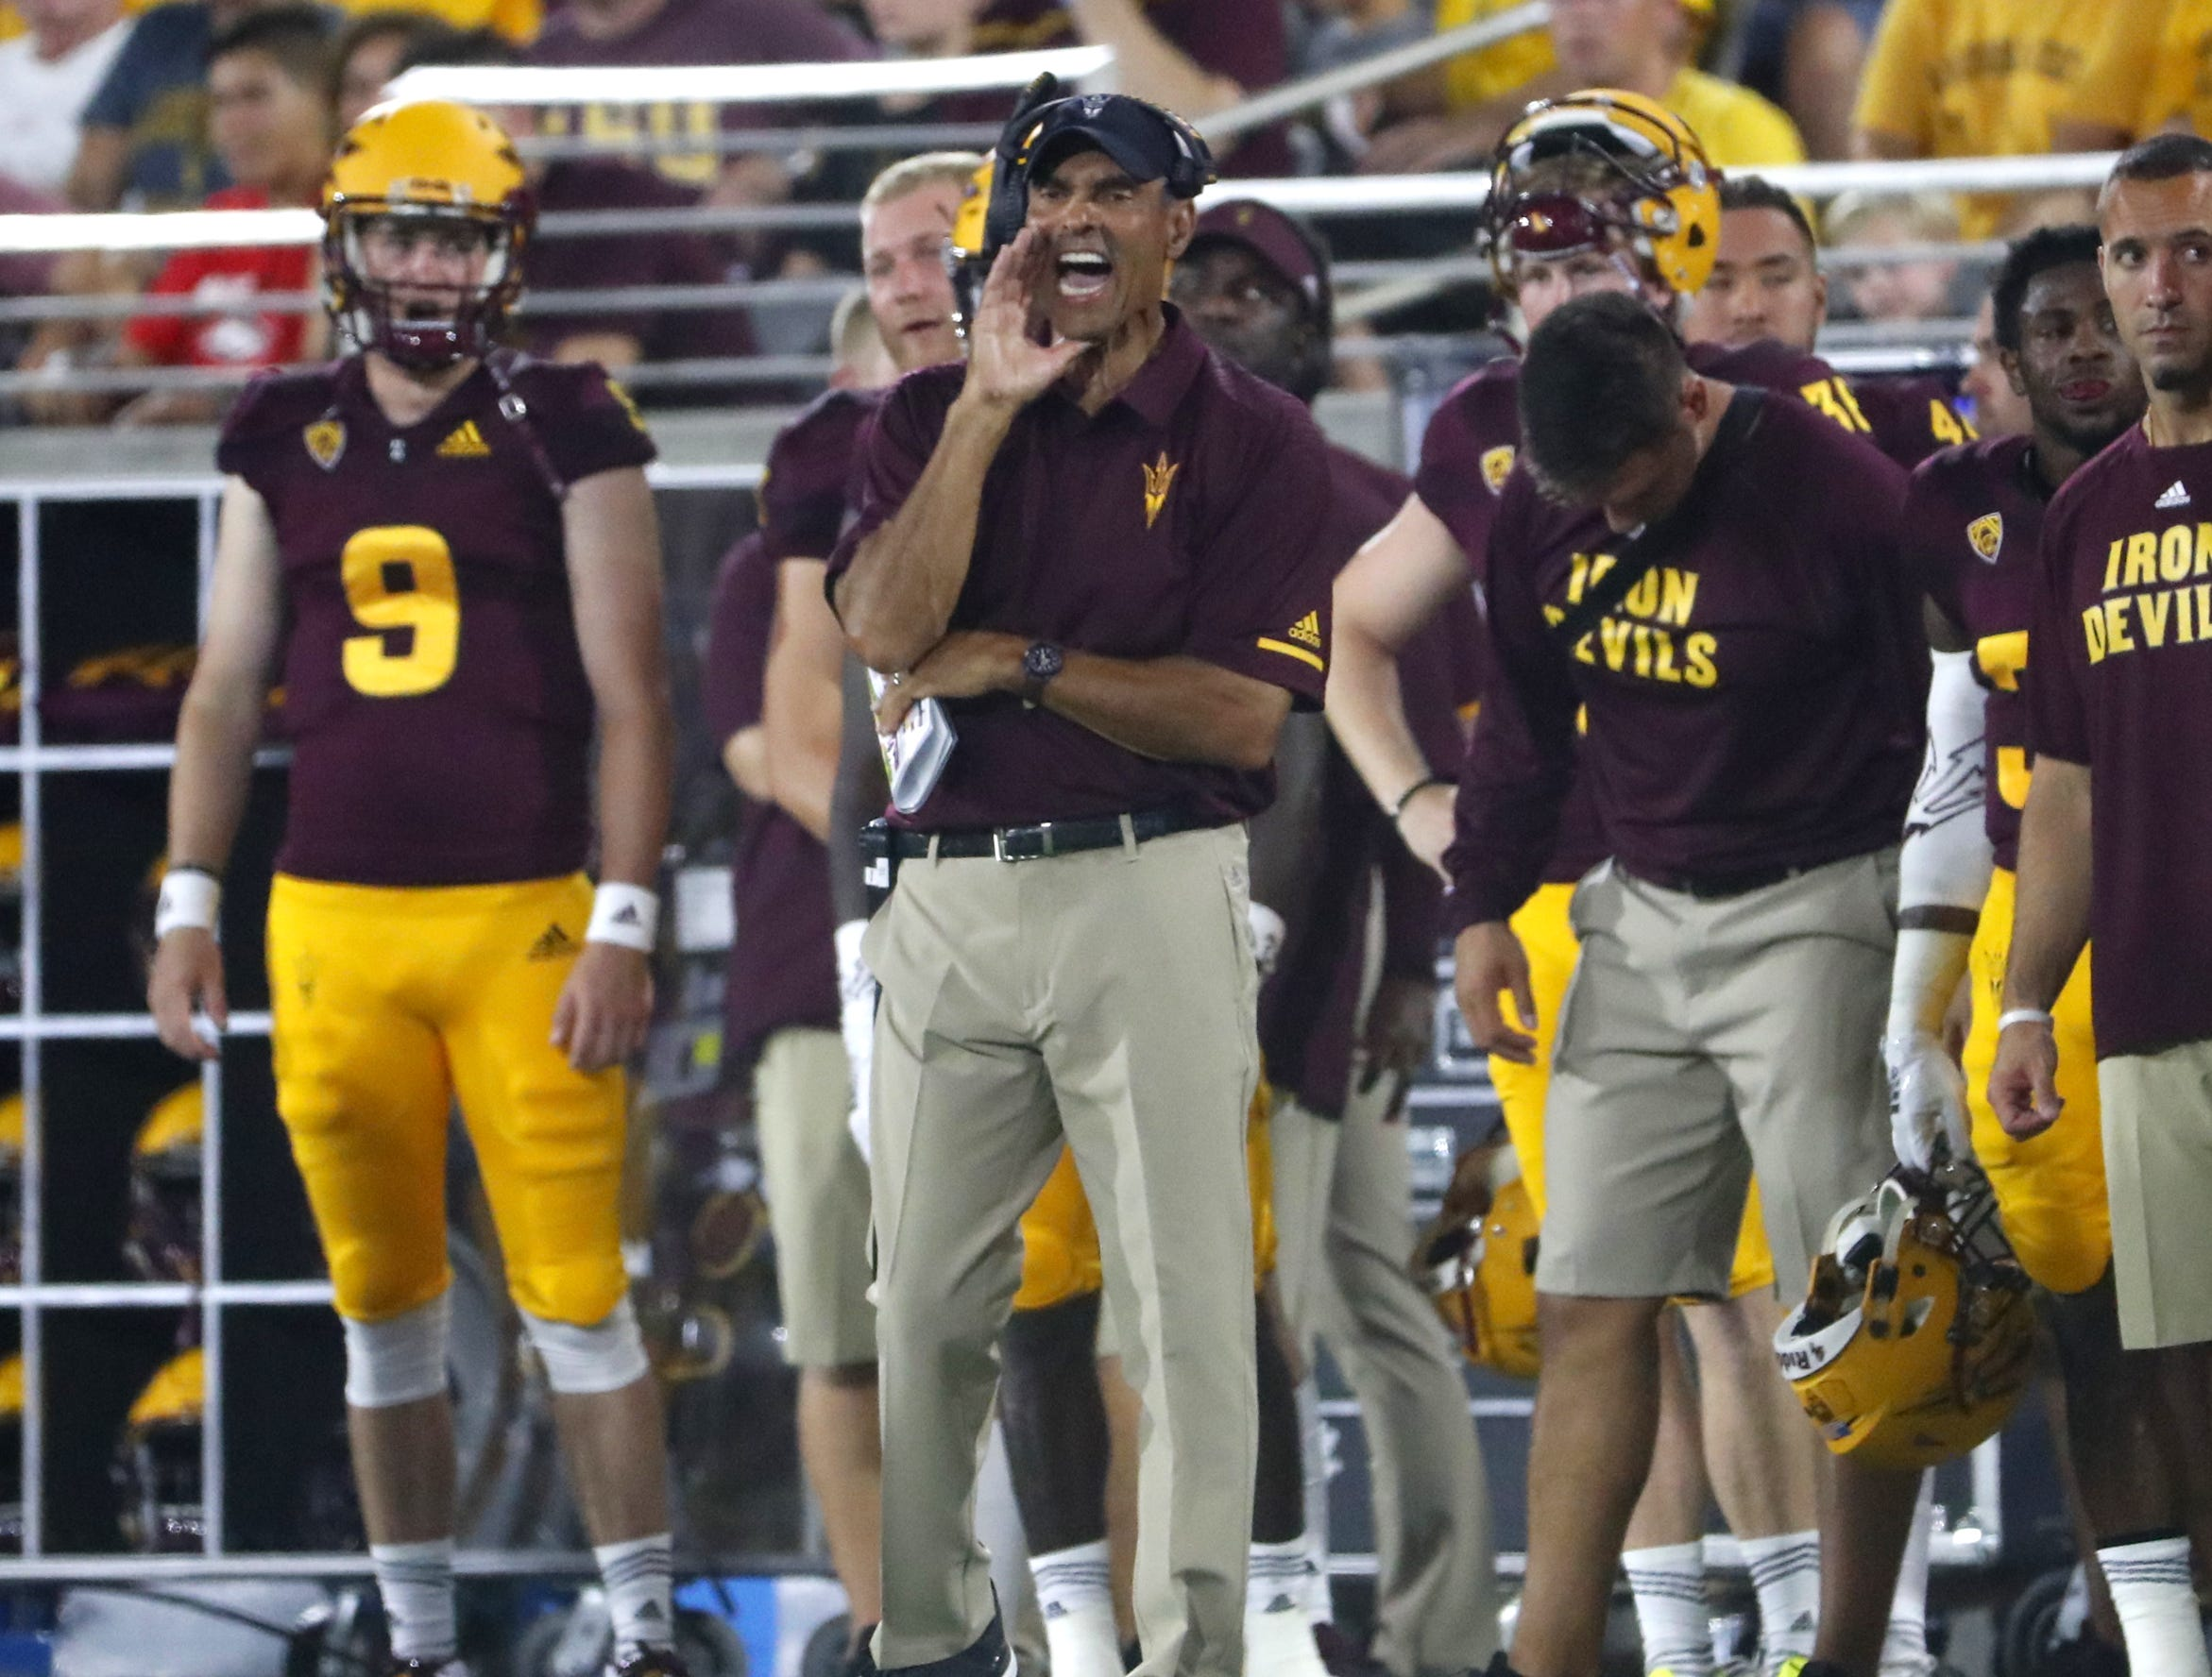 Arizona State Sun Devils head coach Herm Edwards yells to his team from the sidelines during the first half at Sun Devil Stadium in Tempe, Ariz. on Sept. 1, 2018.